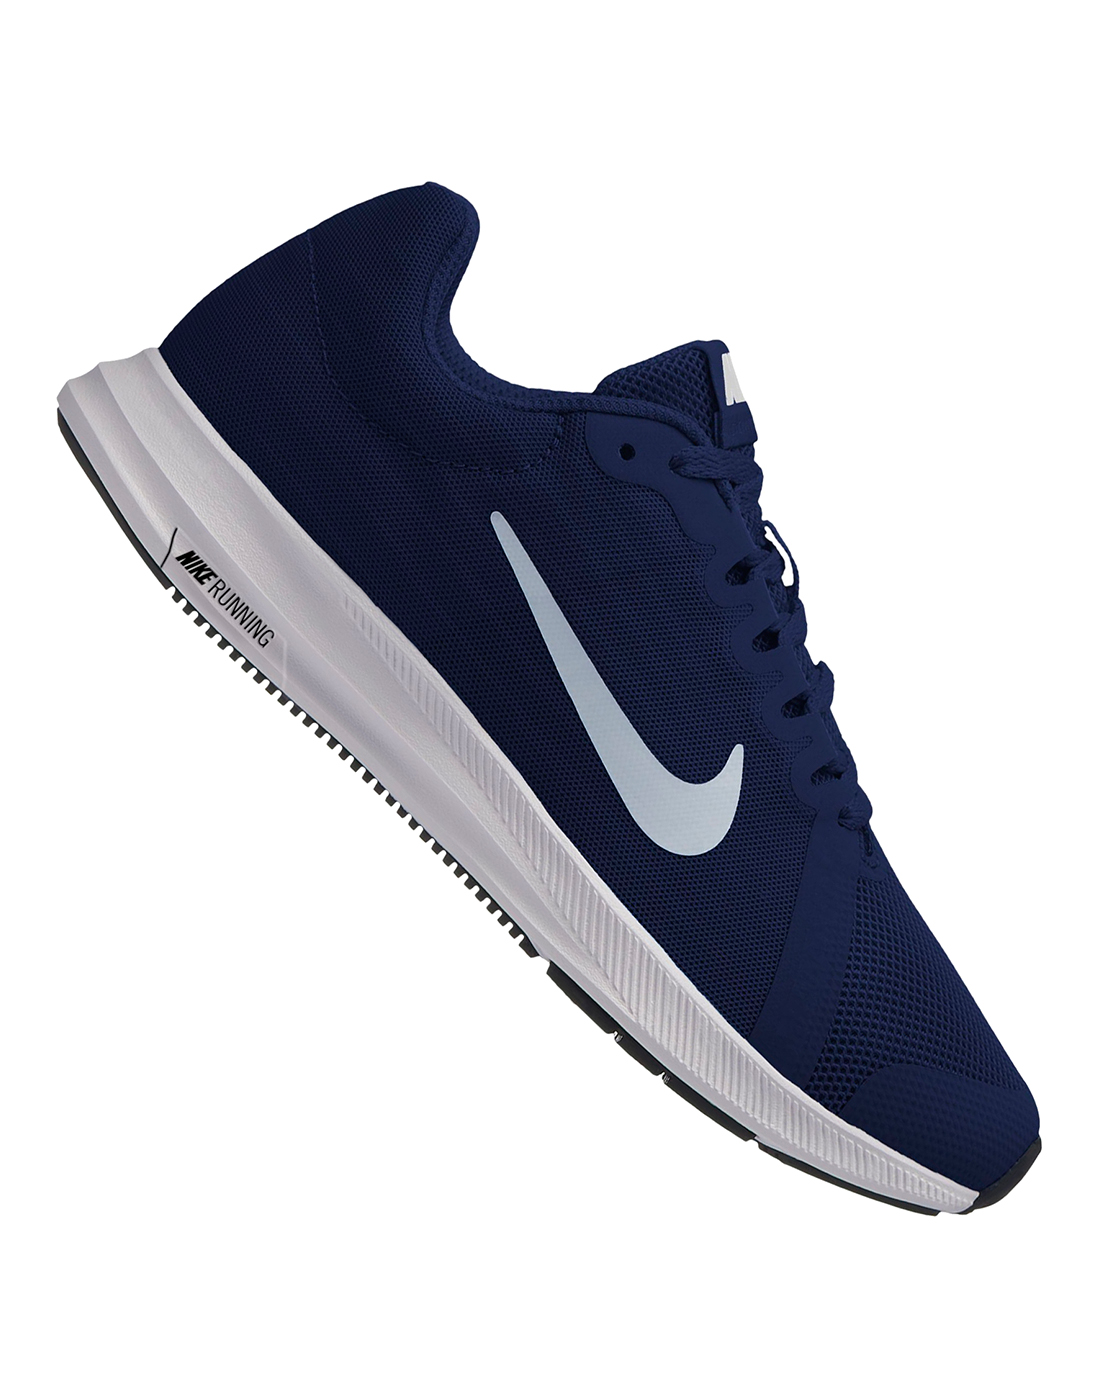 Kid's Navy Nike Downshifter Trainers